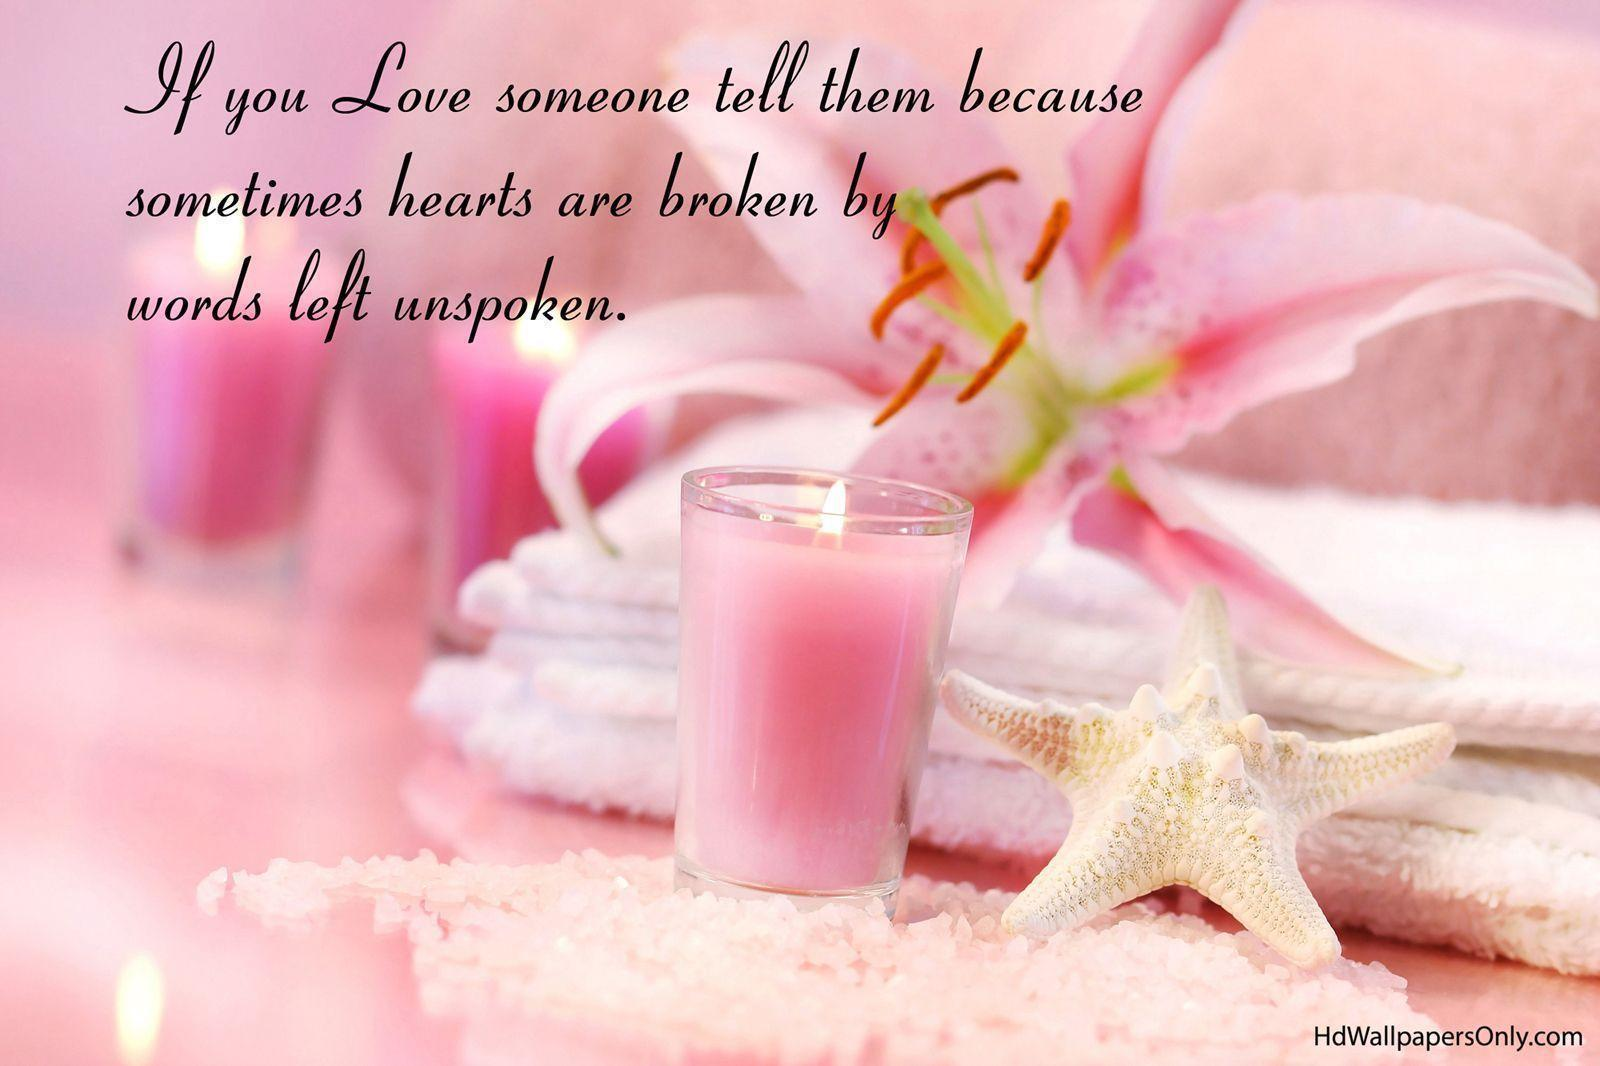 cute Love Quotes Wallpaper For Mobile : cute Love Quotes Wallpapers - Wallpaper cave